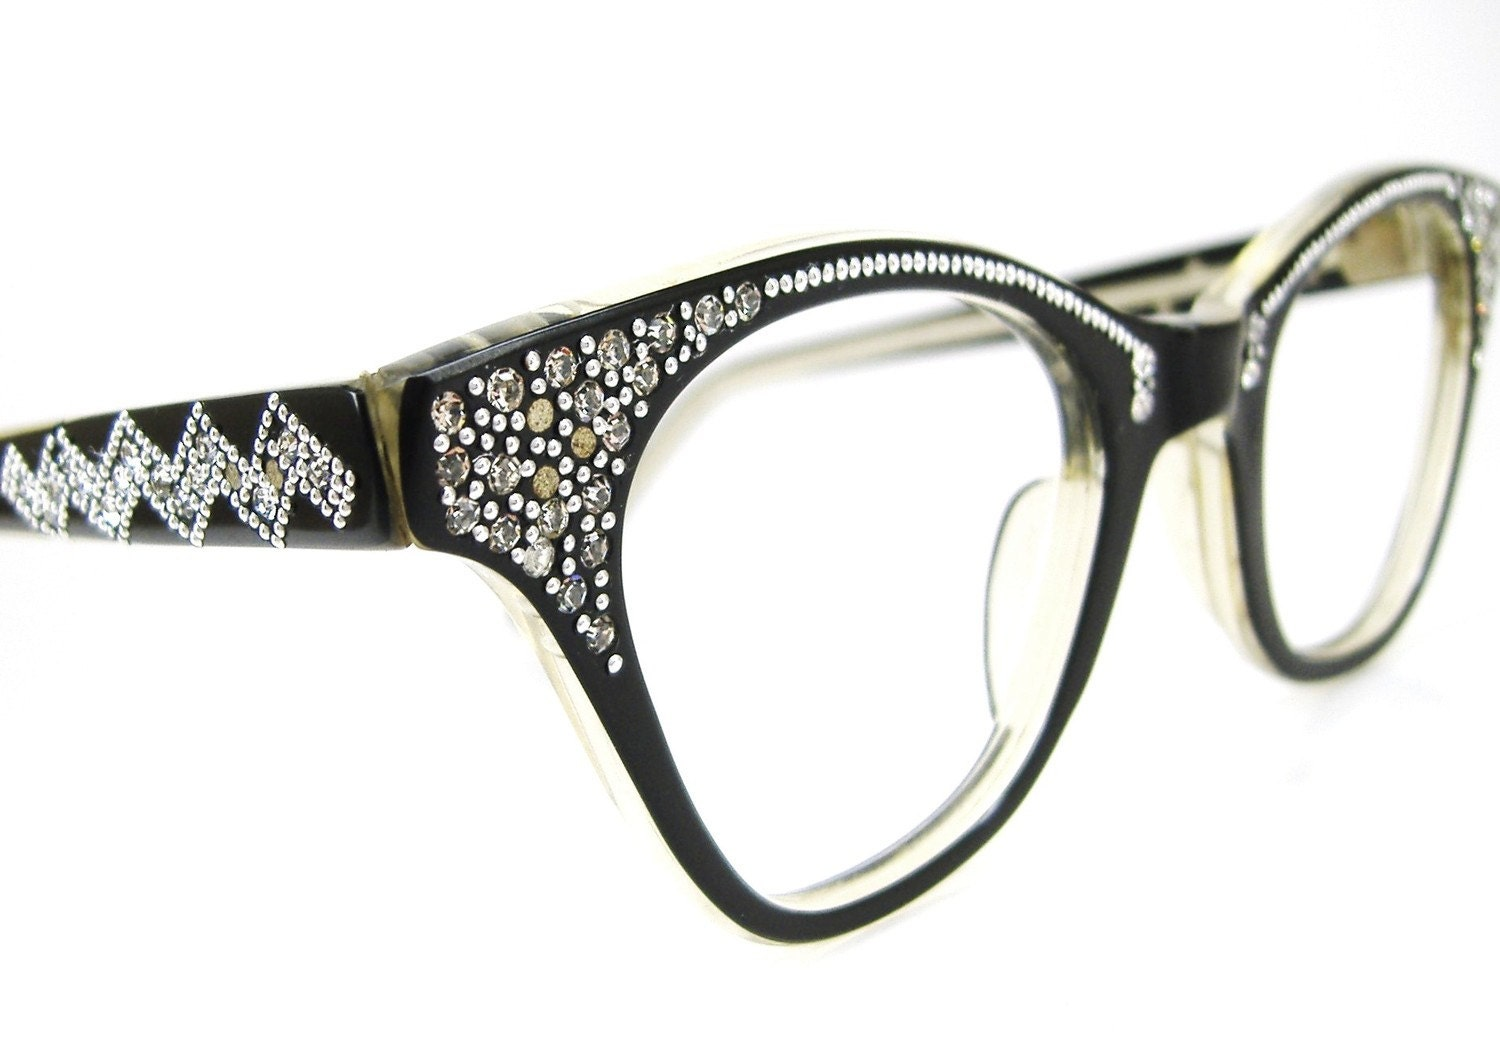 Glasses Frame Discoloration : Vintage 50s Black Cat eye Eyeglasses Frame by ...